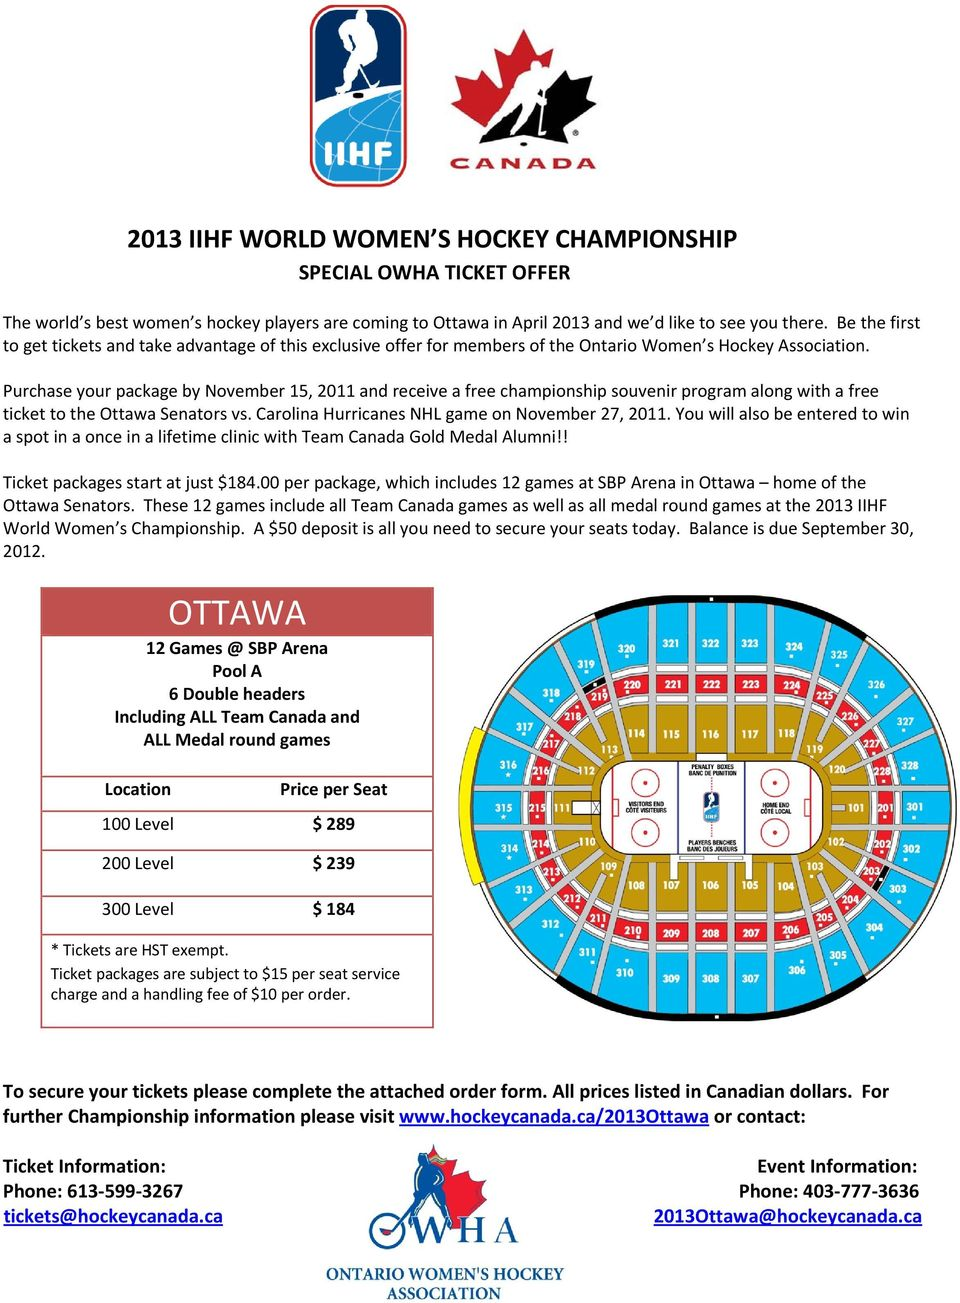 Purchase your package by November 15, 2011 and receive a free championship souvenir program along with a free ticket to the Ottawa Senators vs. Carolina Hurricanes NHL game on November 27, 2011.